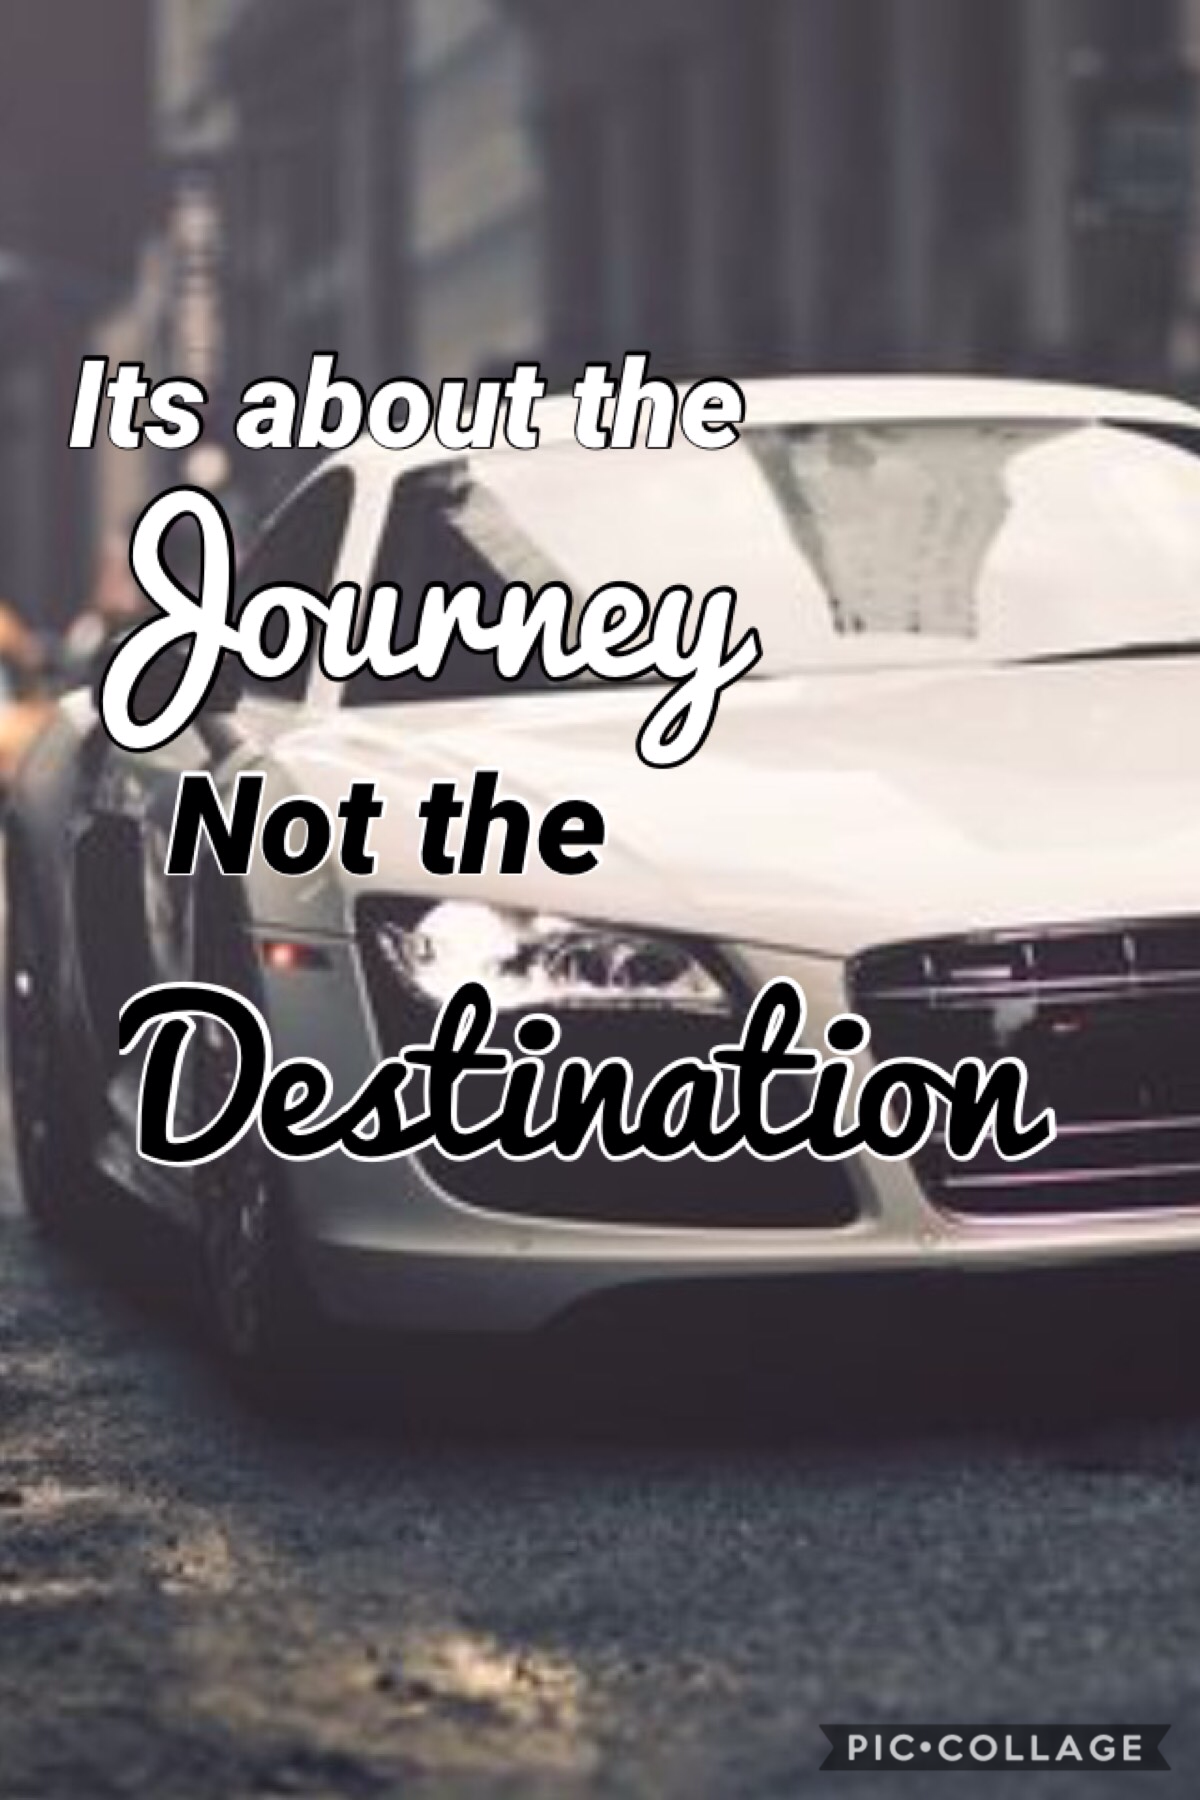 It's about the journey not the destination